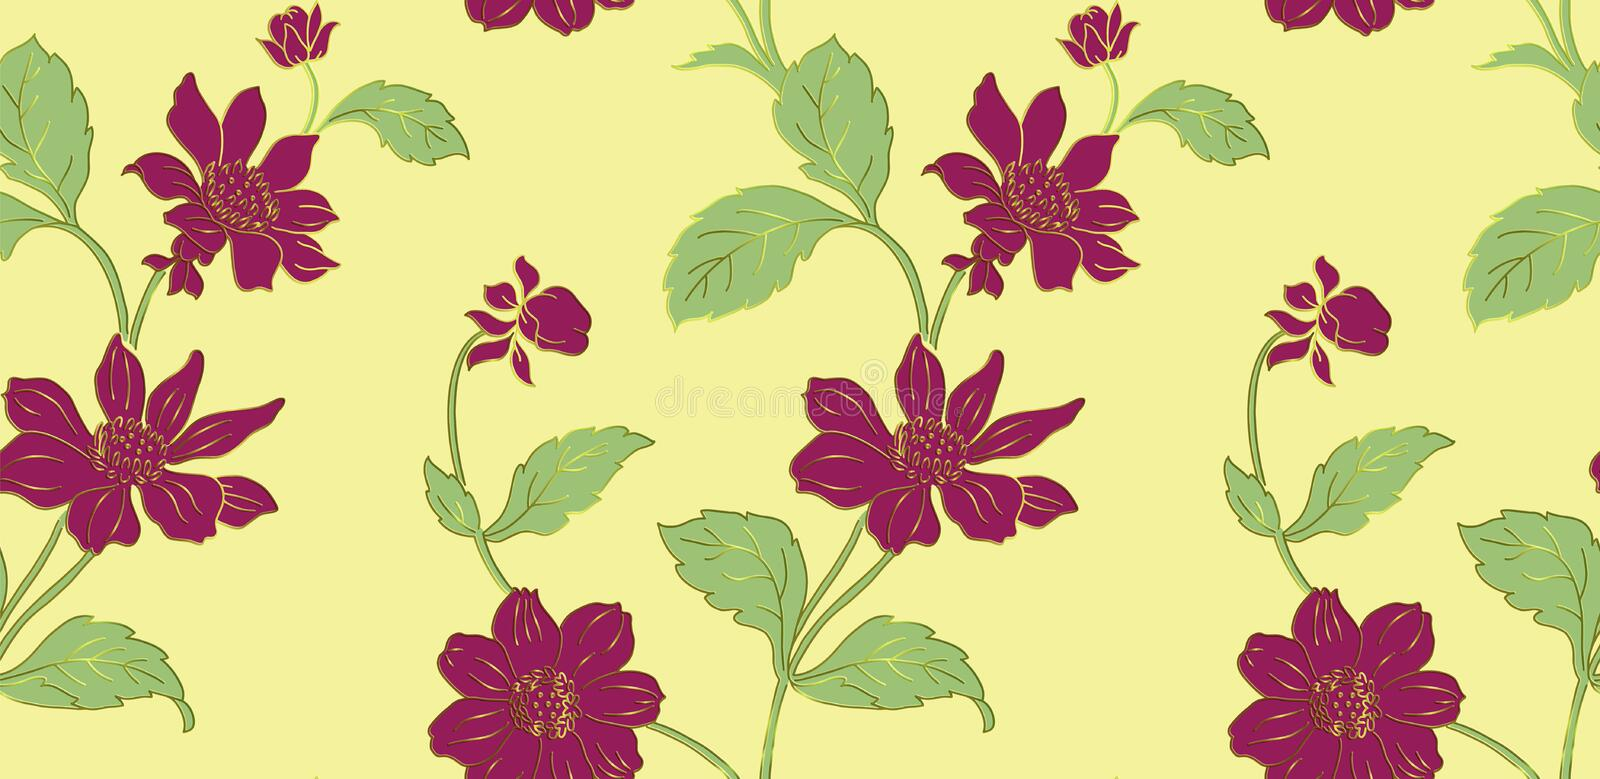 Seamless Floral Pattern in vectorn royalty free illustration